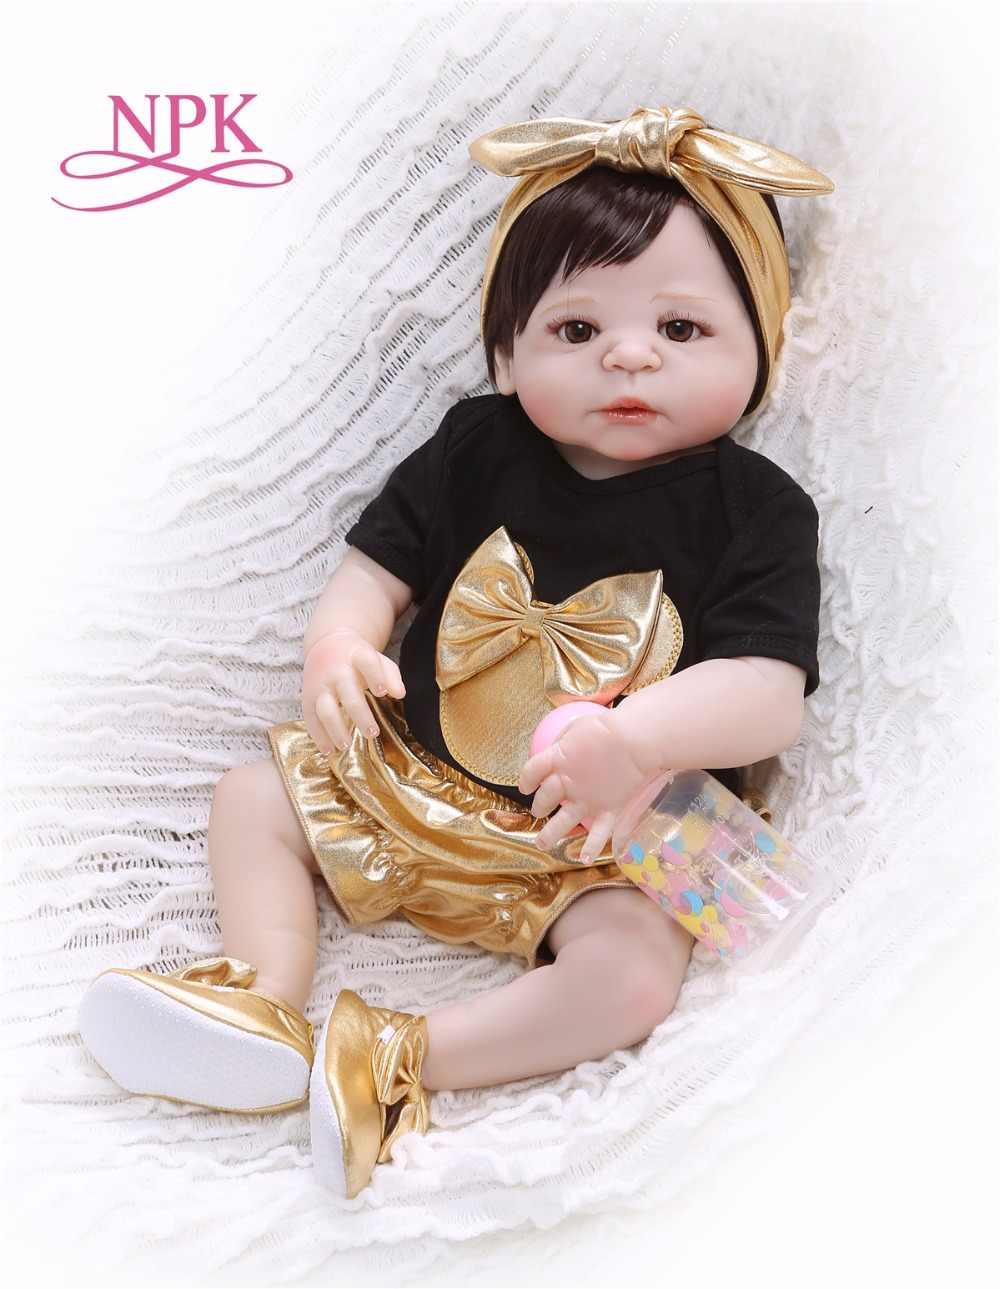 NPK 56cm Silicone Full Body bebe Doll reborn baby Real Life golden Princess Baby Doll For Xmas Gift Waterproof bath toy soft toy